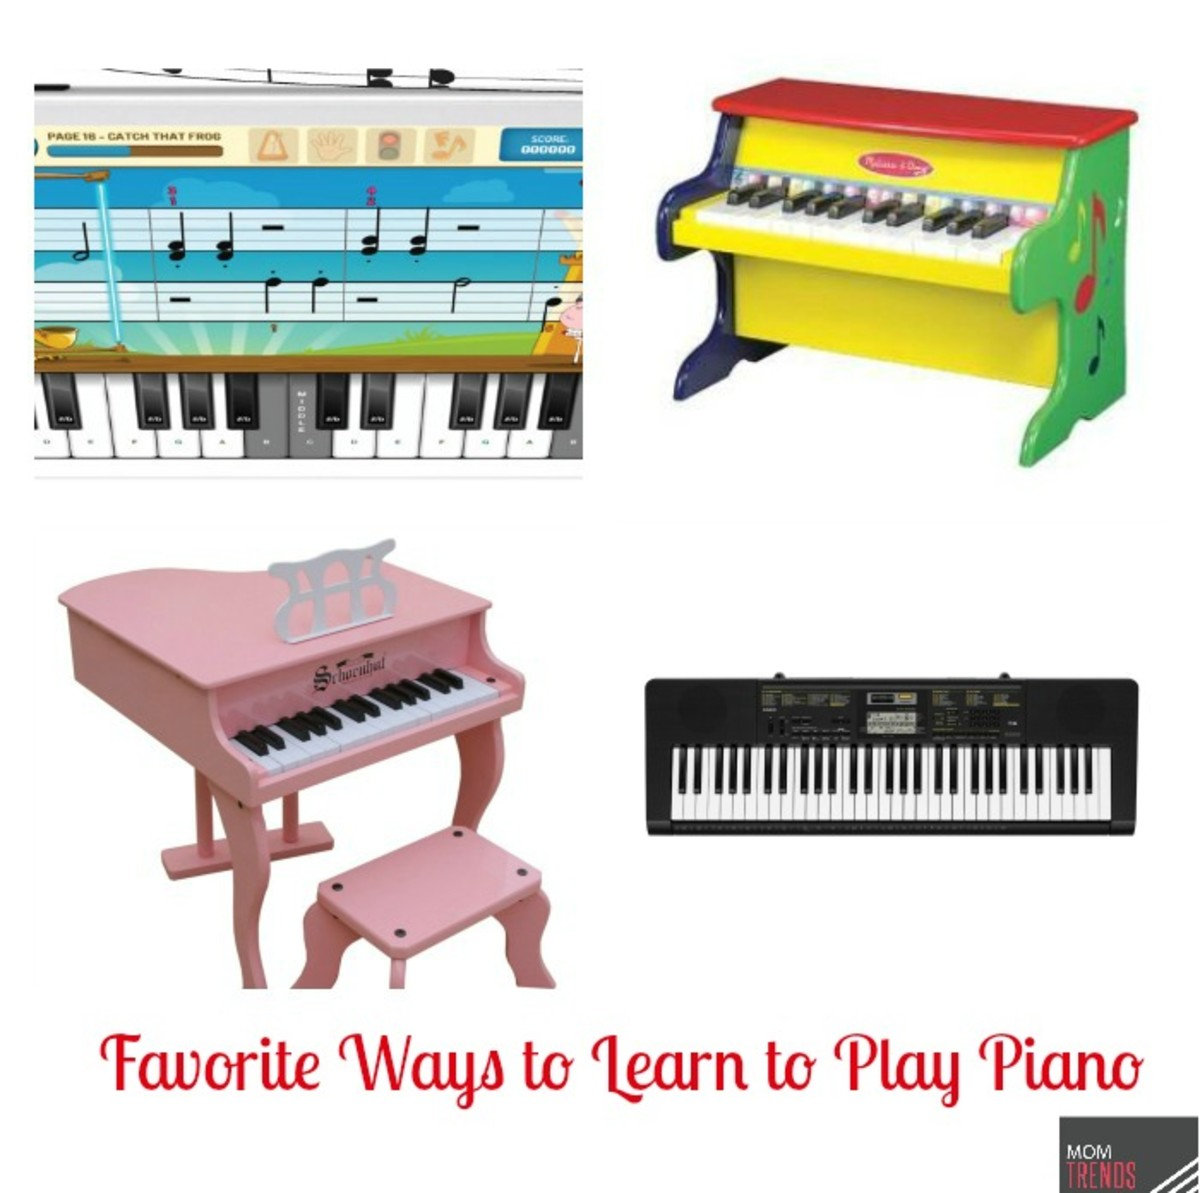 Favorite Ways to Learn to Play Piano